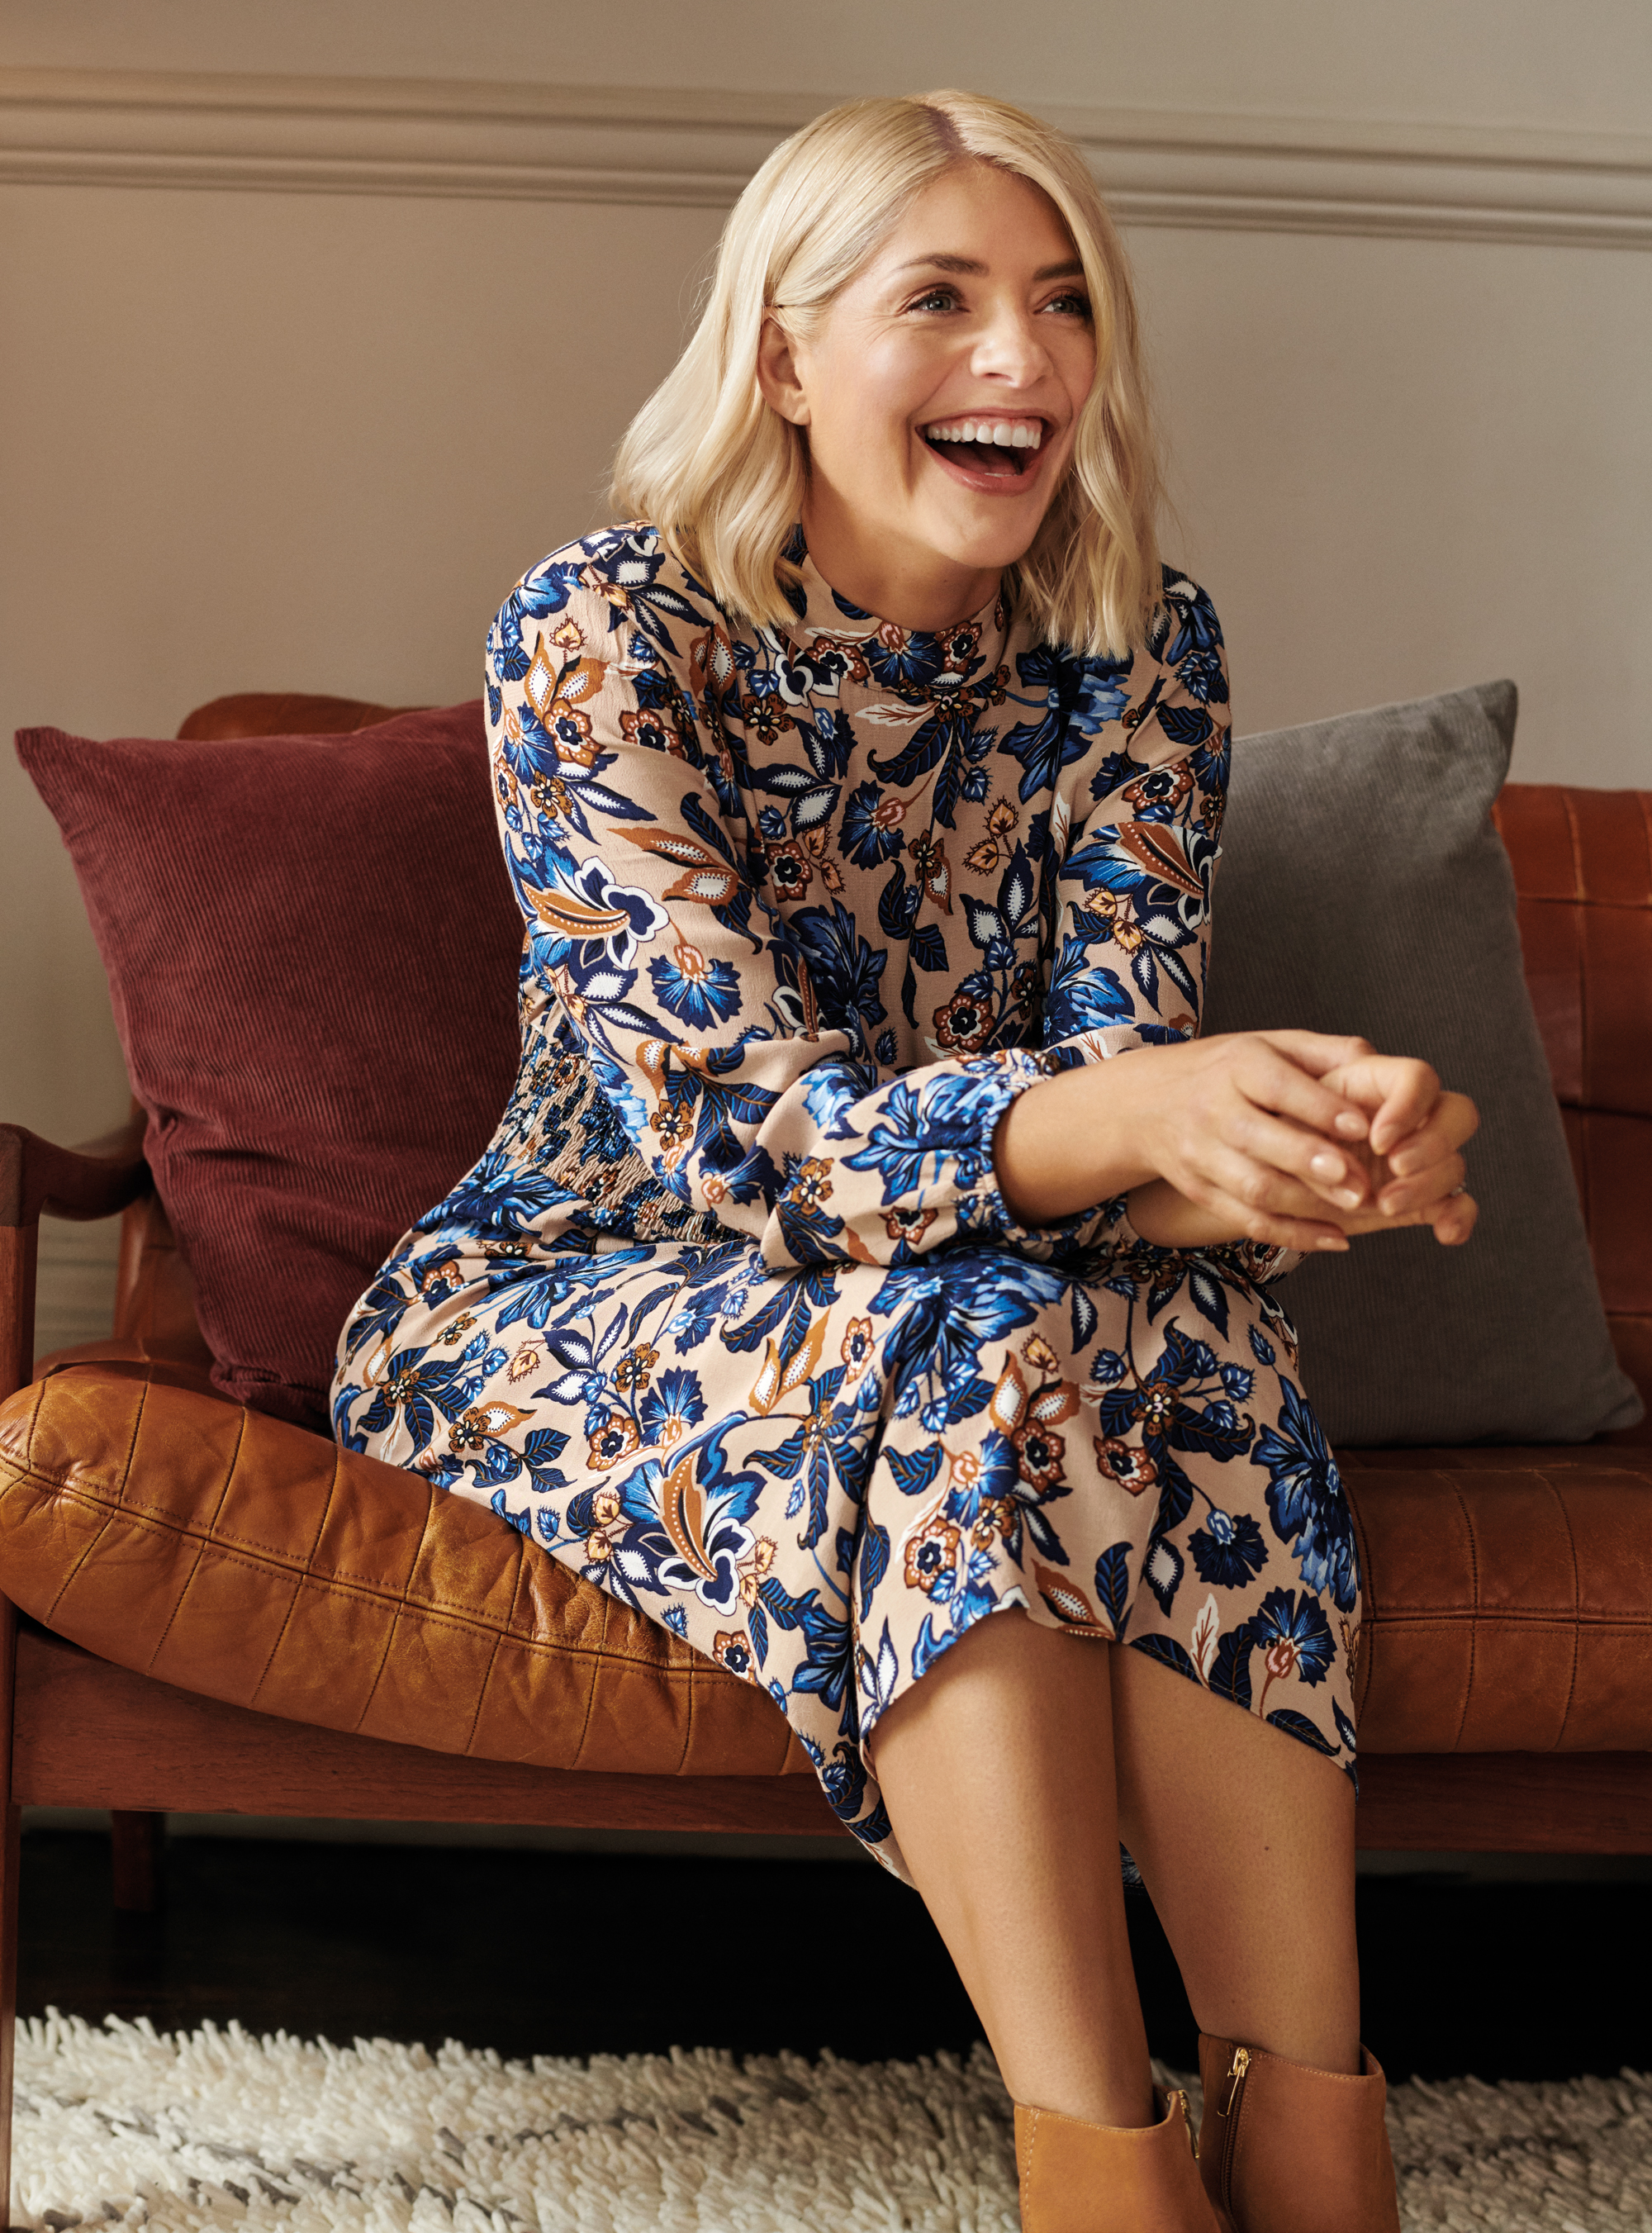 Holly Willoughby in the M&S autumn campaign